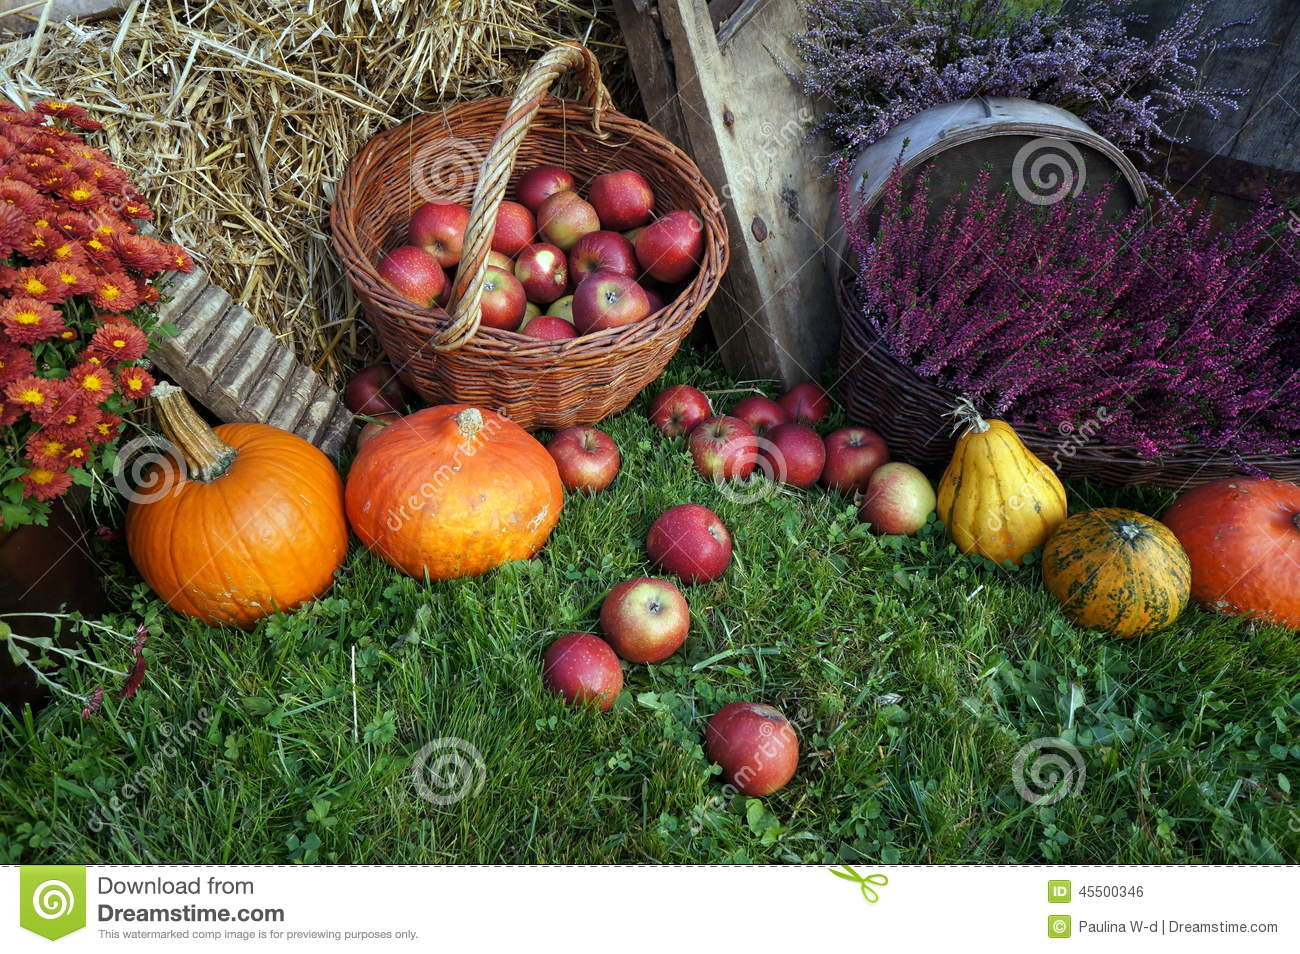 Autumn decoration, red and green apples in a wicker basket on straw, pumpkins, squash, heather flowers and chrysanthemum flowers